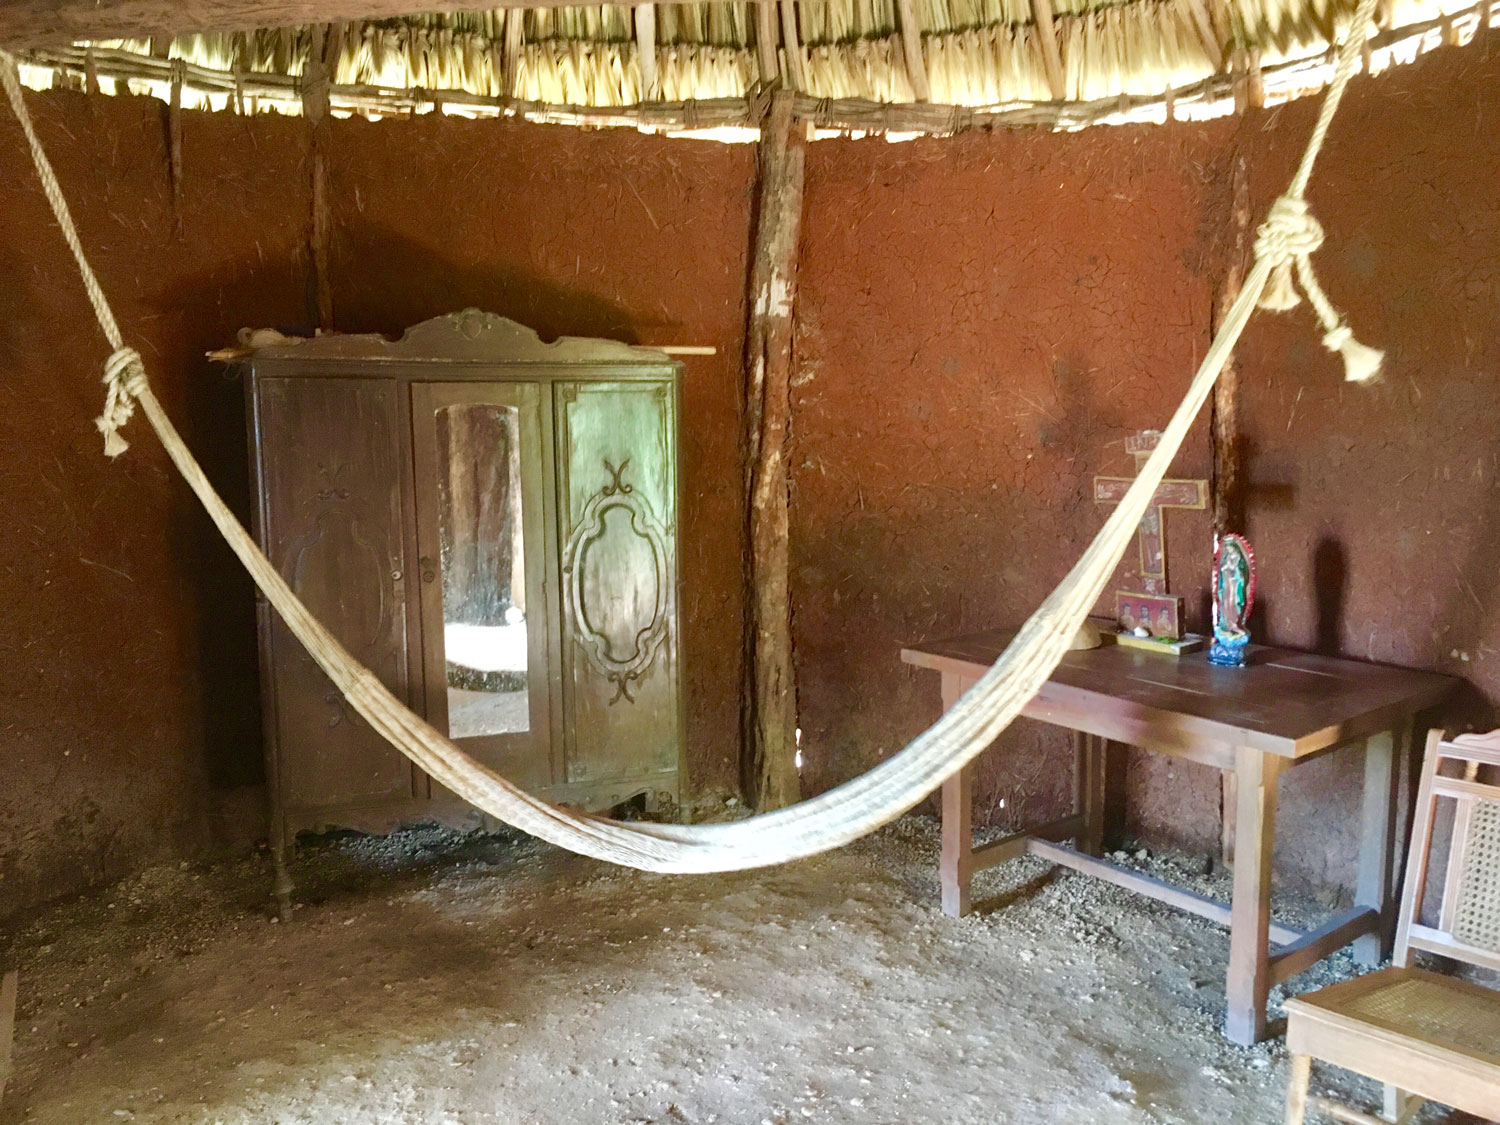 Traditional Mayan wooden house, with a palapa roof (from palm leaves). Below: with Don Antonio whose parents worked here.